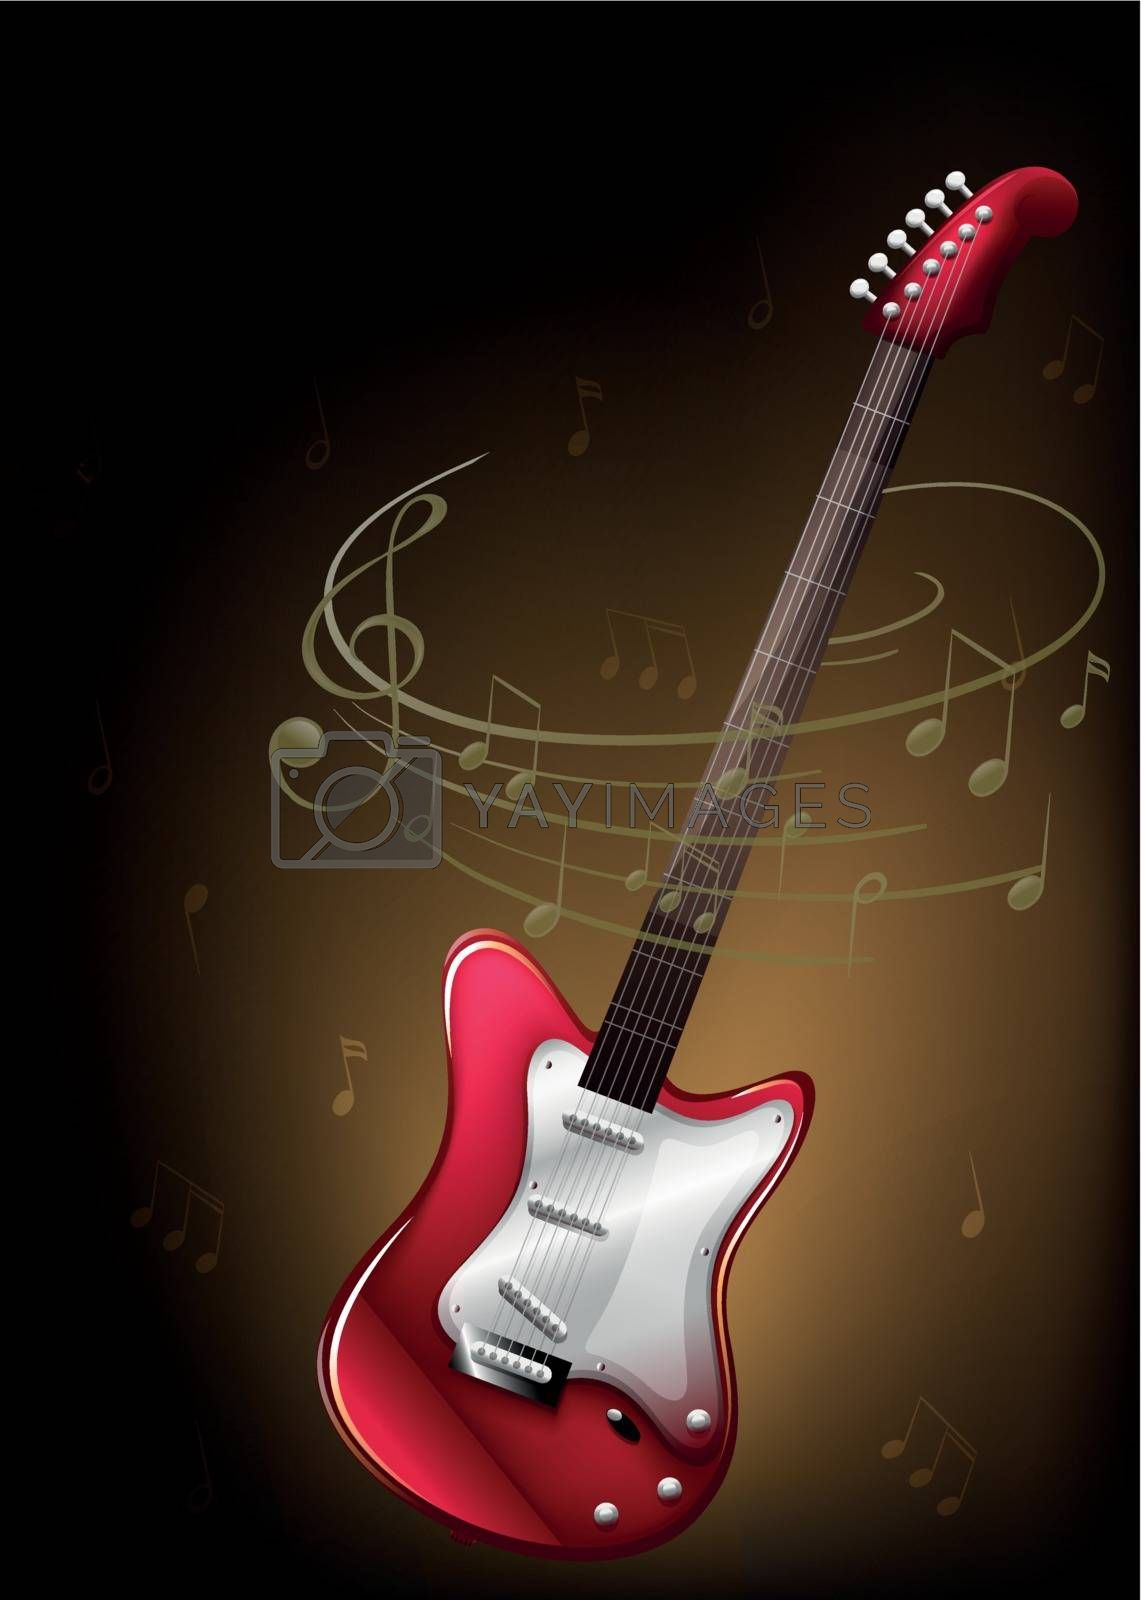 Illustration of a red guitar with musical notes